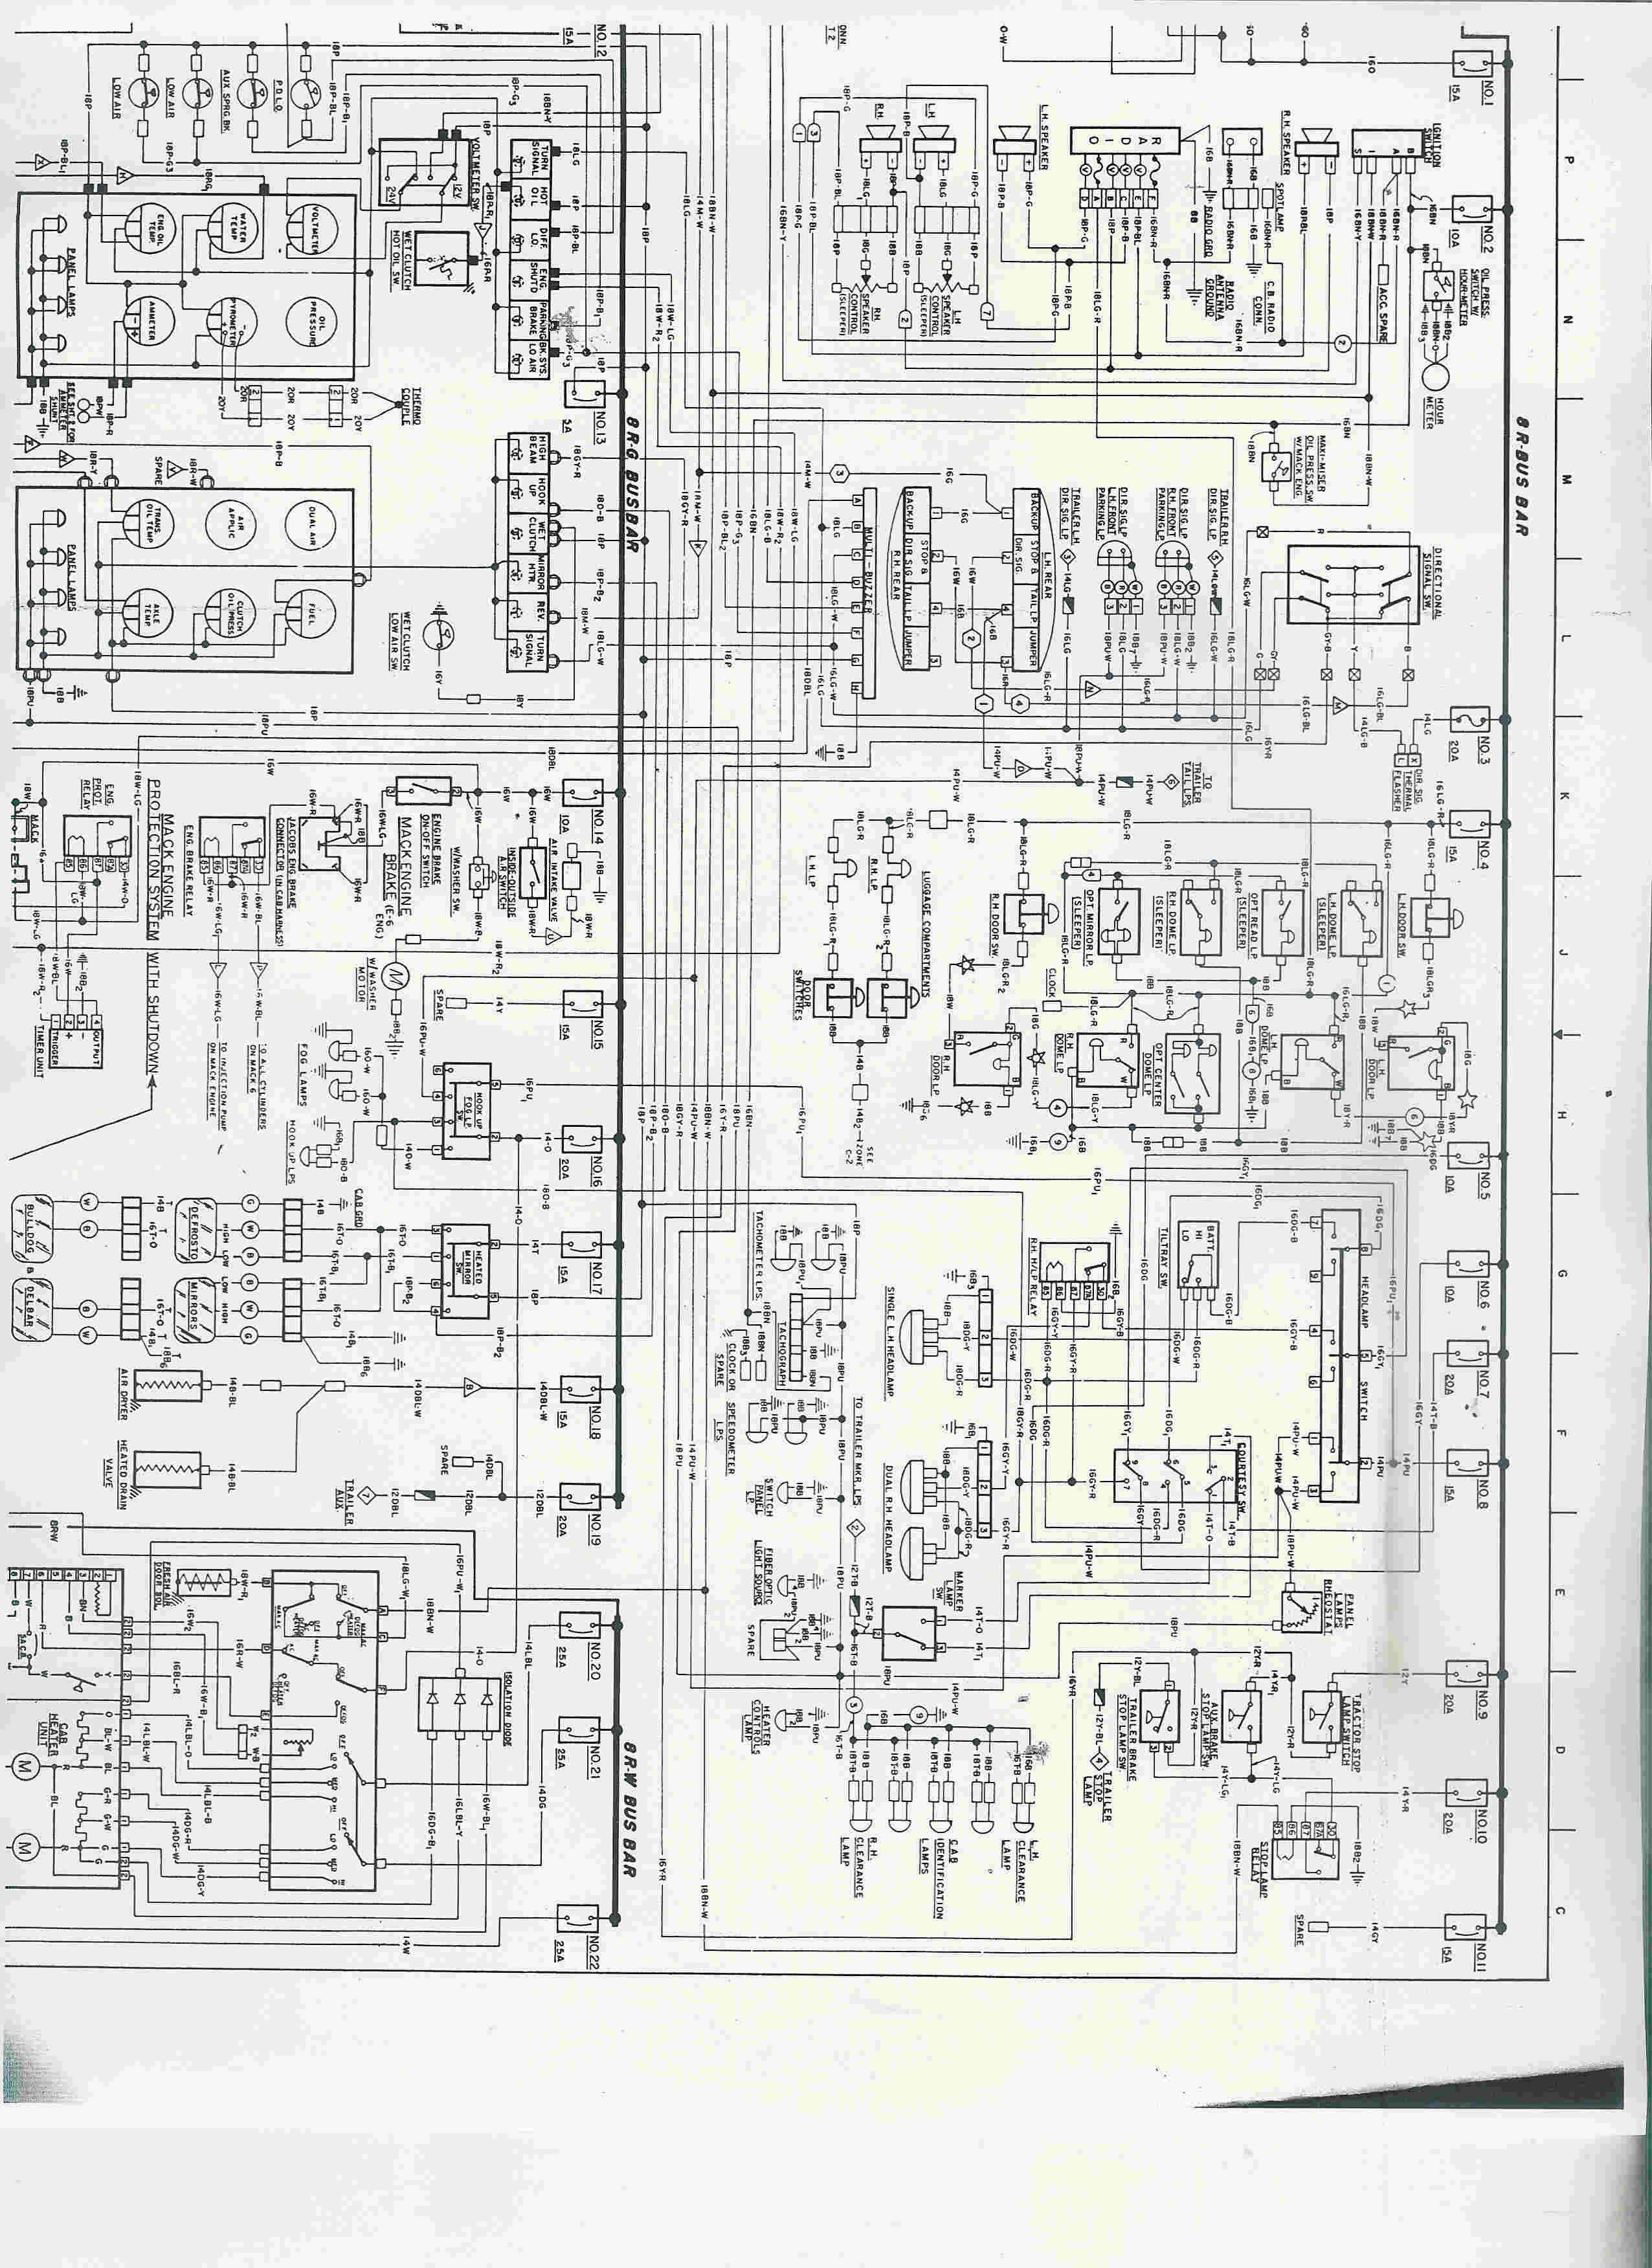 mack gu713 wiring diagram   25 wiring diagram images